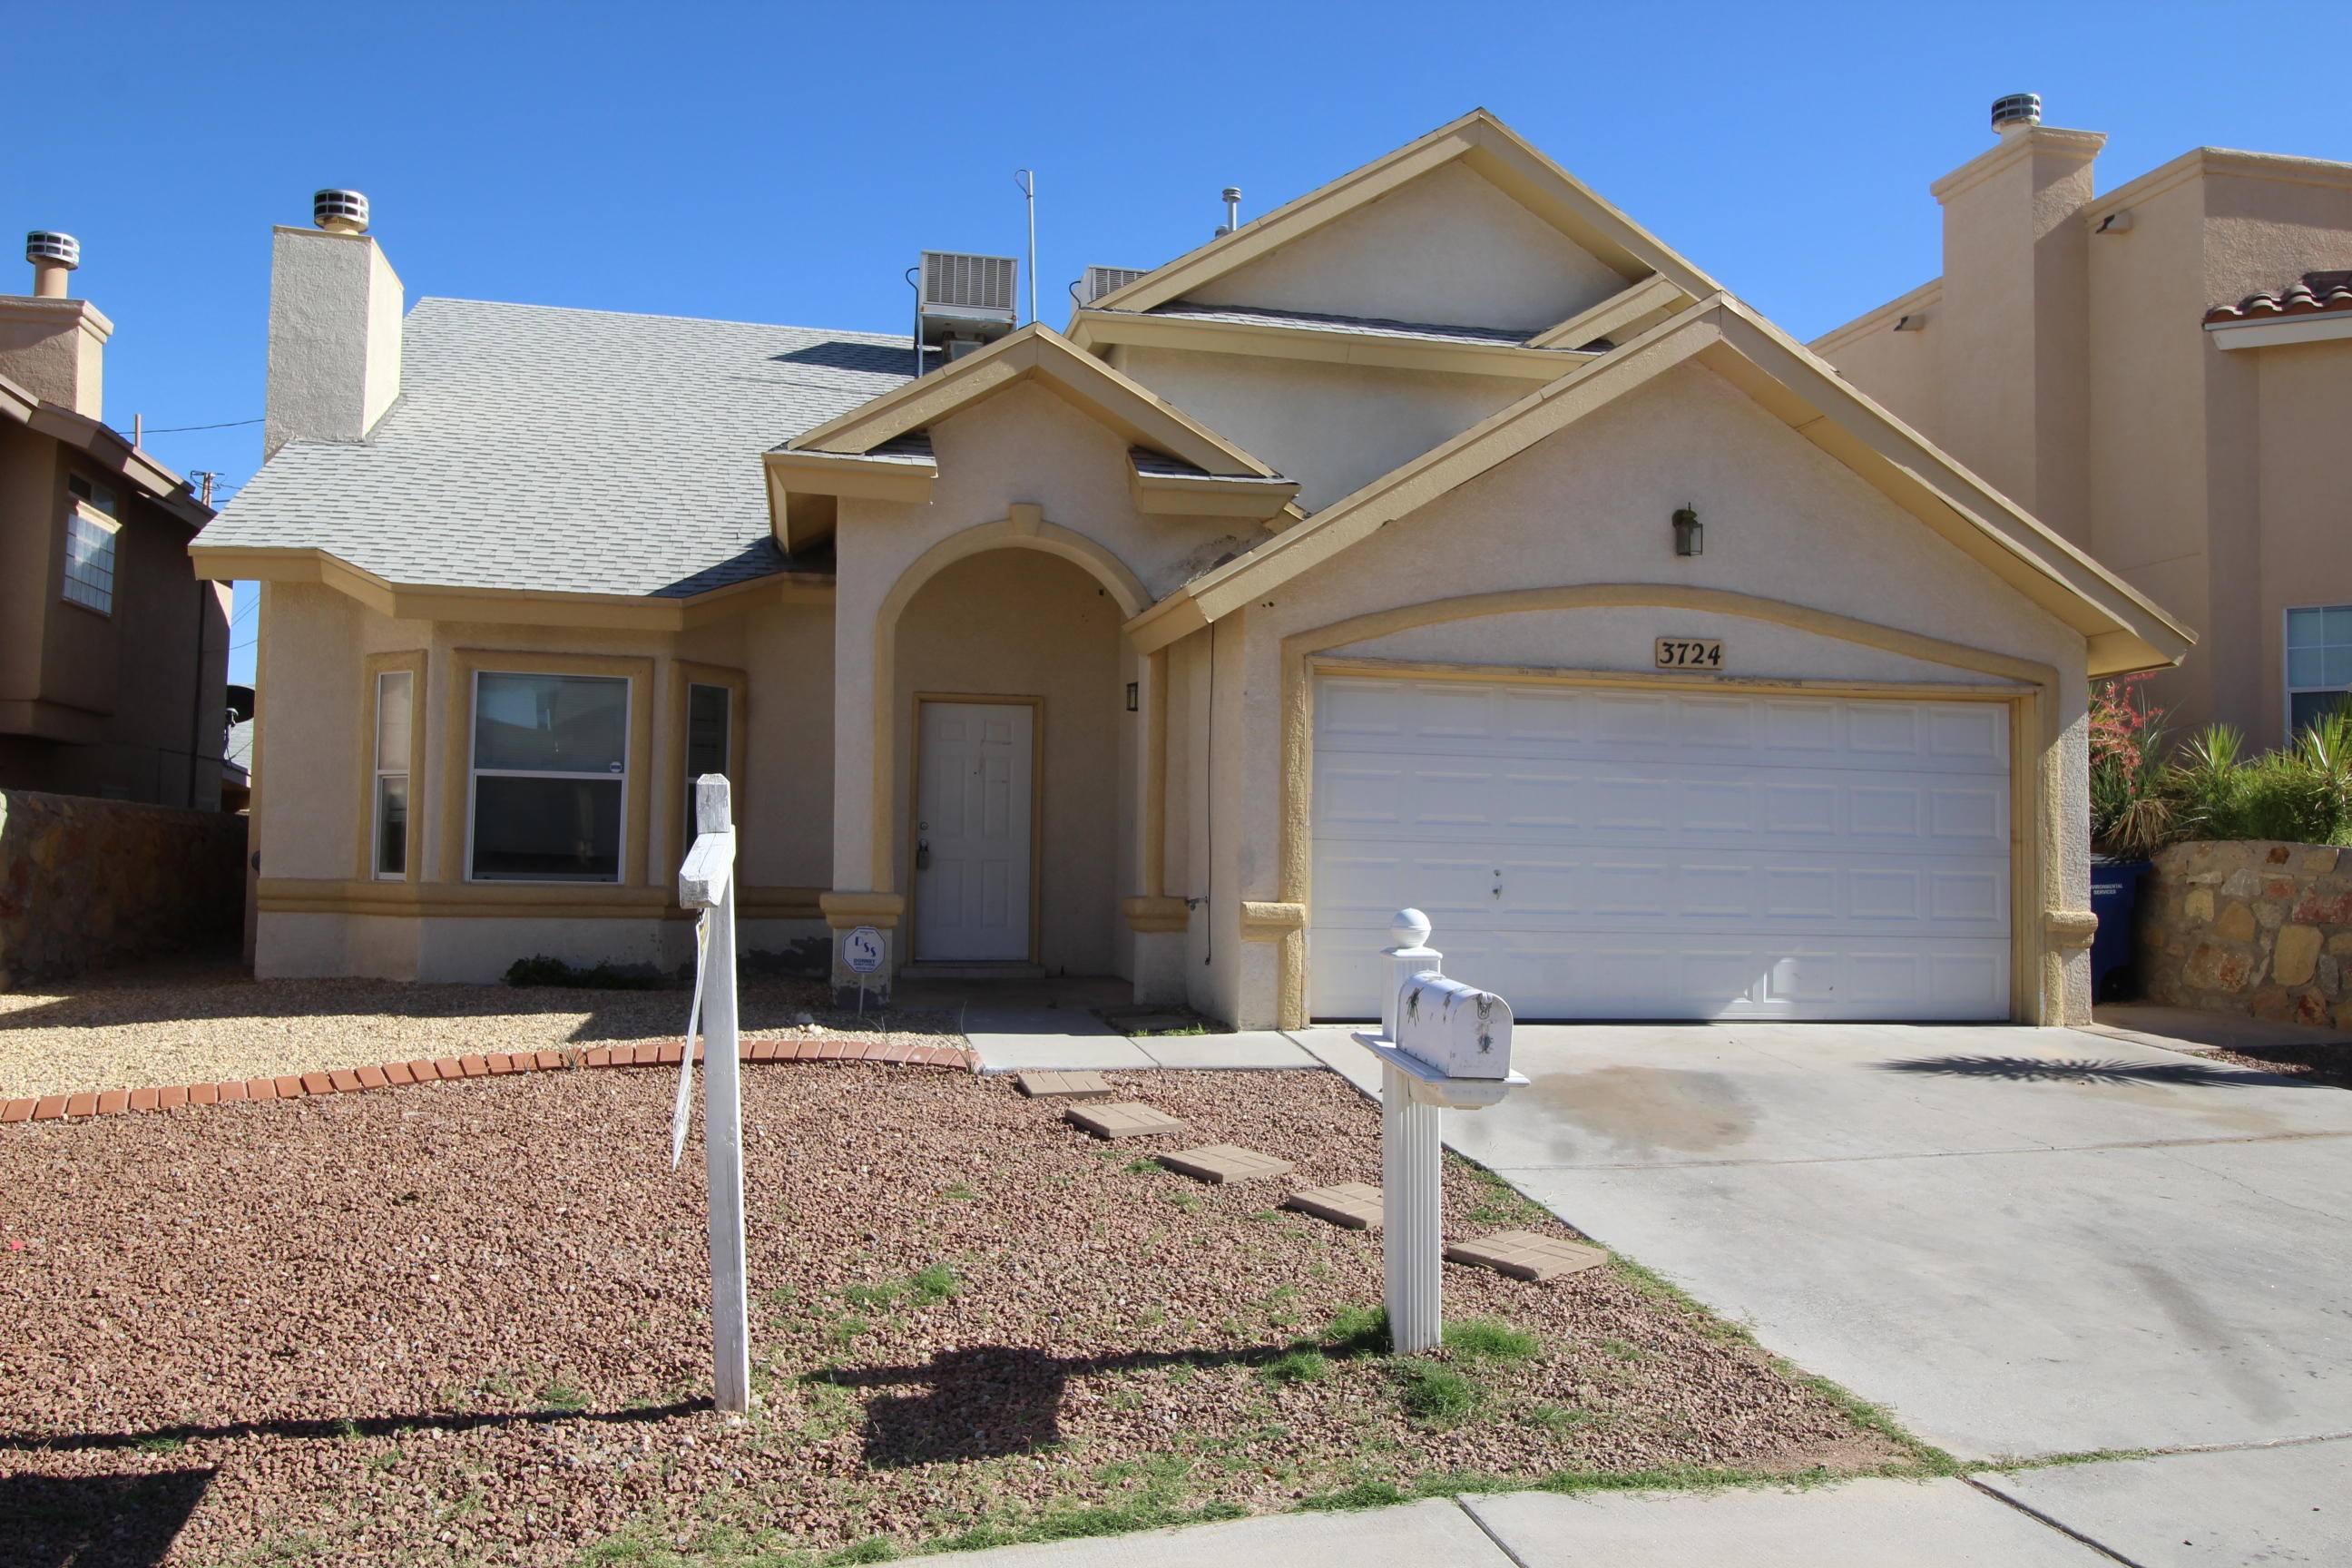 3724 HUBBLE, El Paso, Texas 79904, 4 Bedrooms Bedrooms, ,3 BathroomsBathrooms,Residential,For sale,HUBBLE,809123